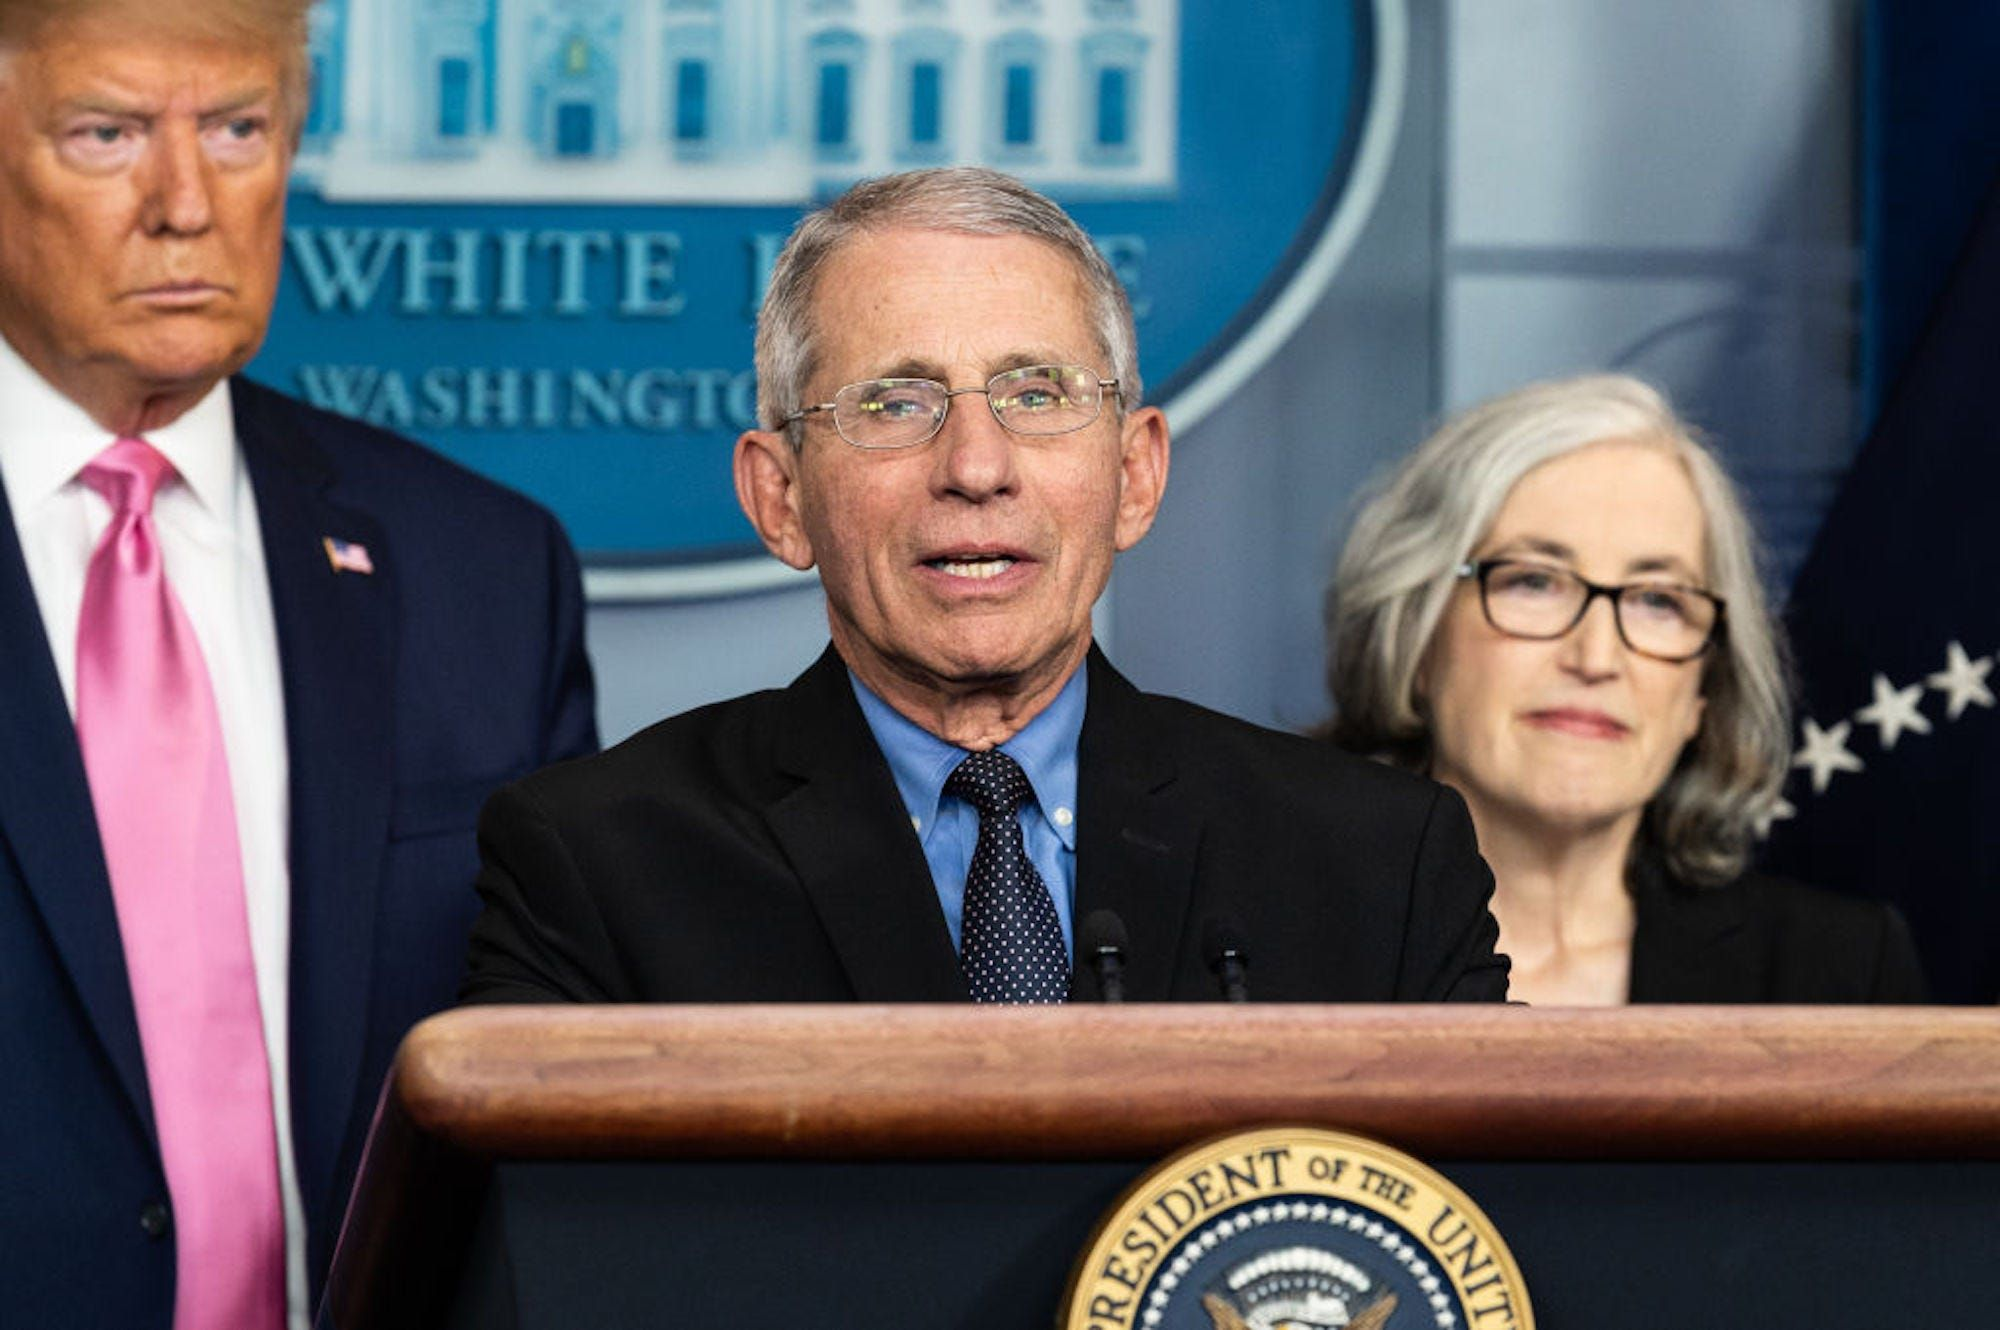 Anthony Fauci who the Trump administration barred from